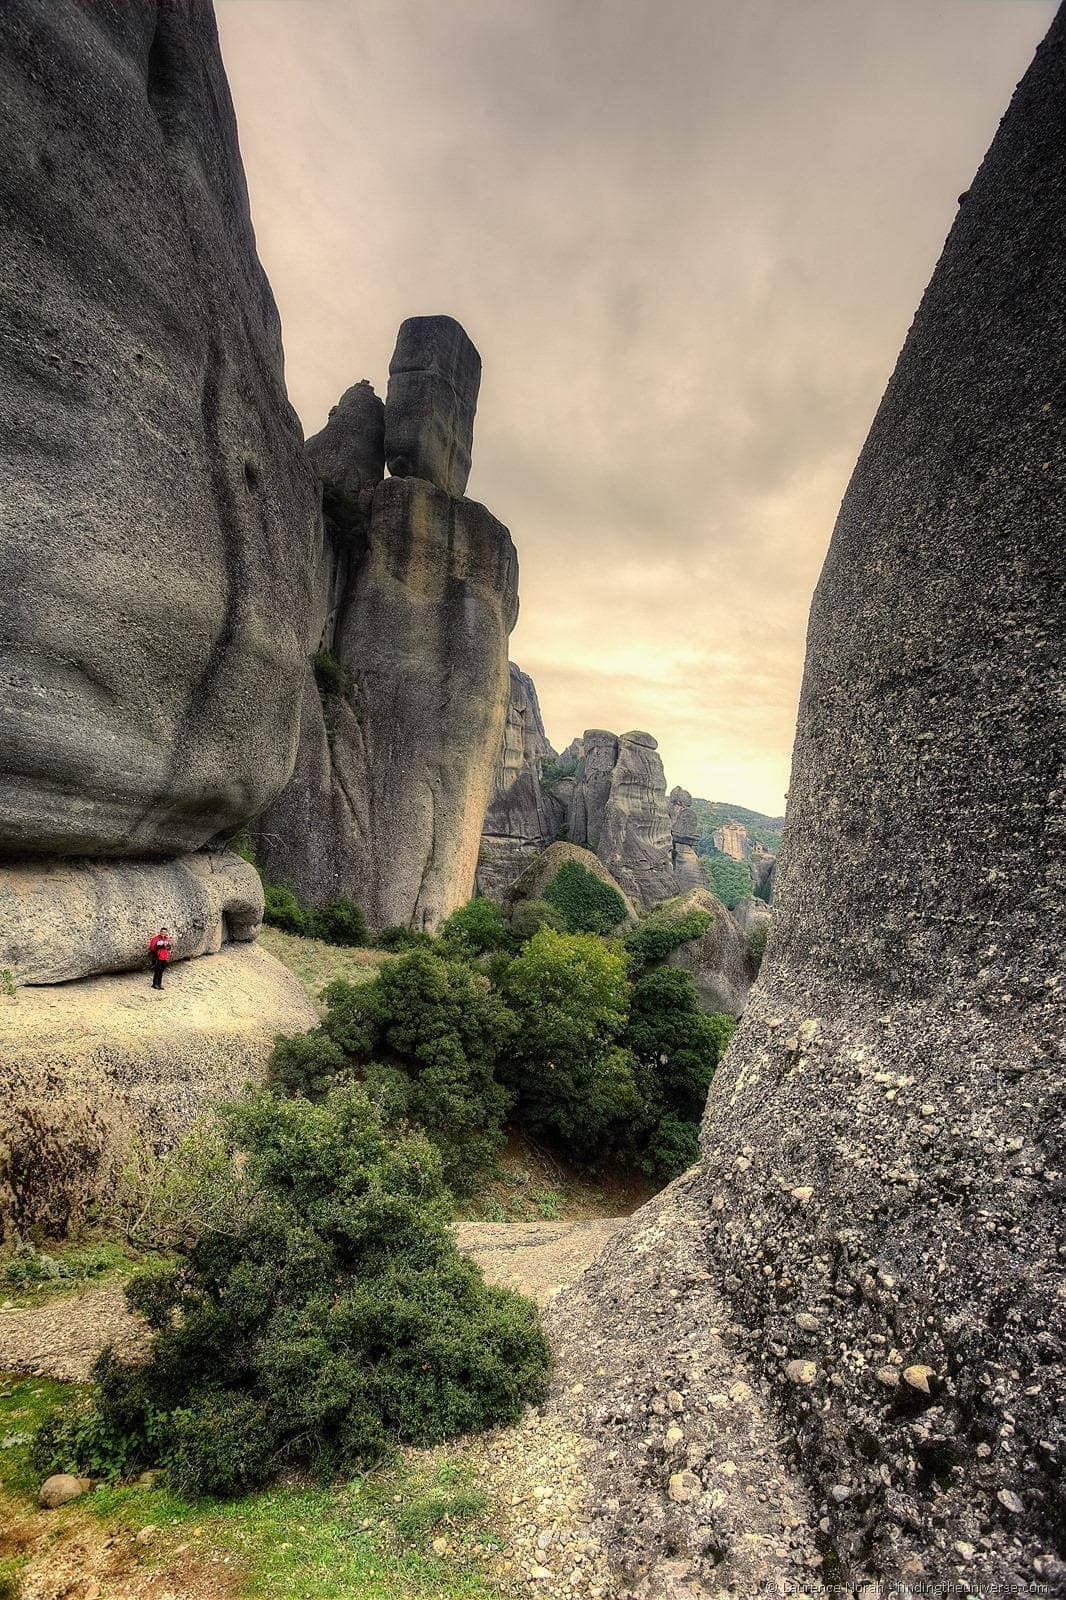 man in rock formation meteora greece